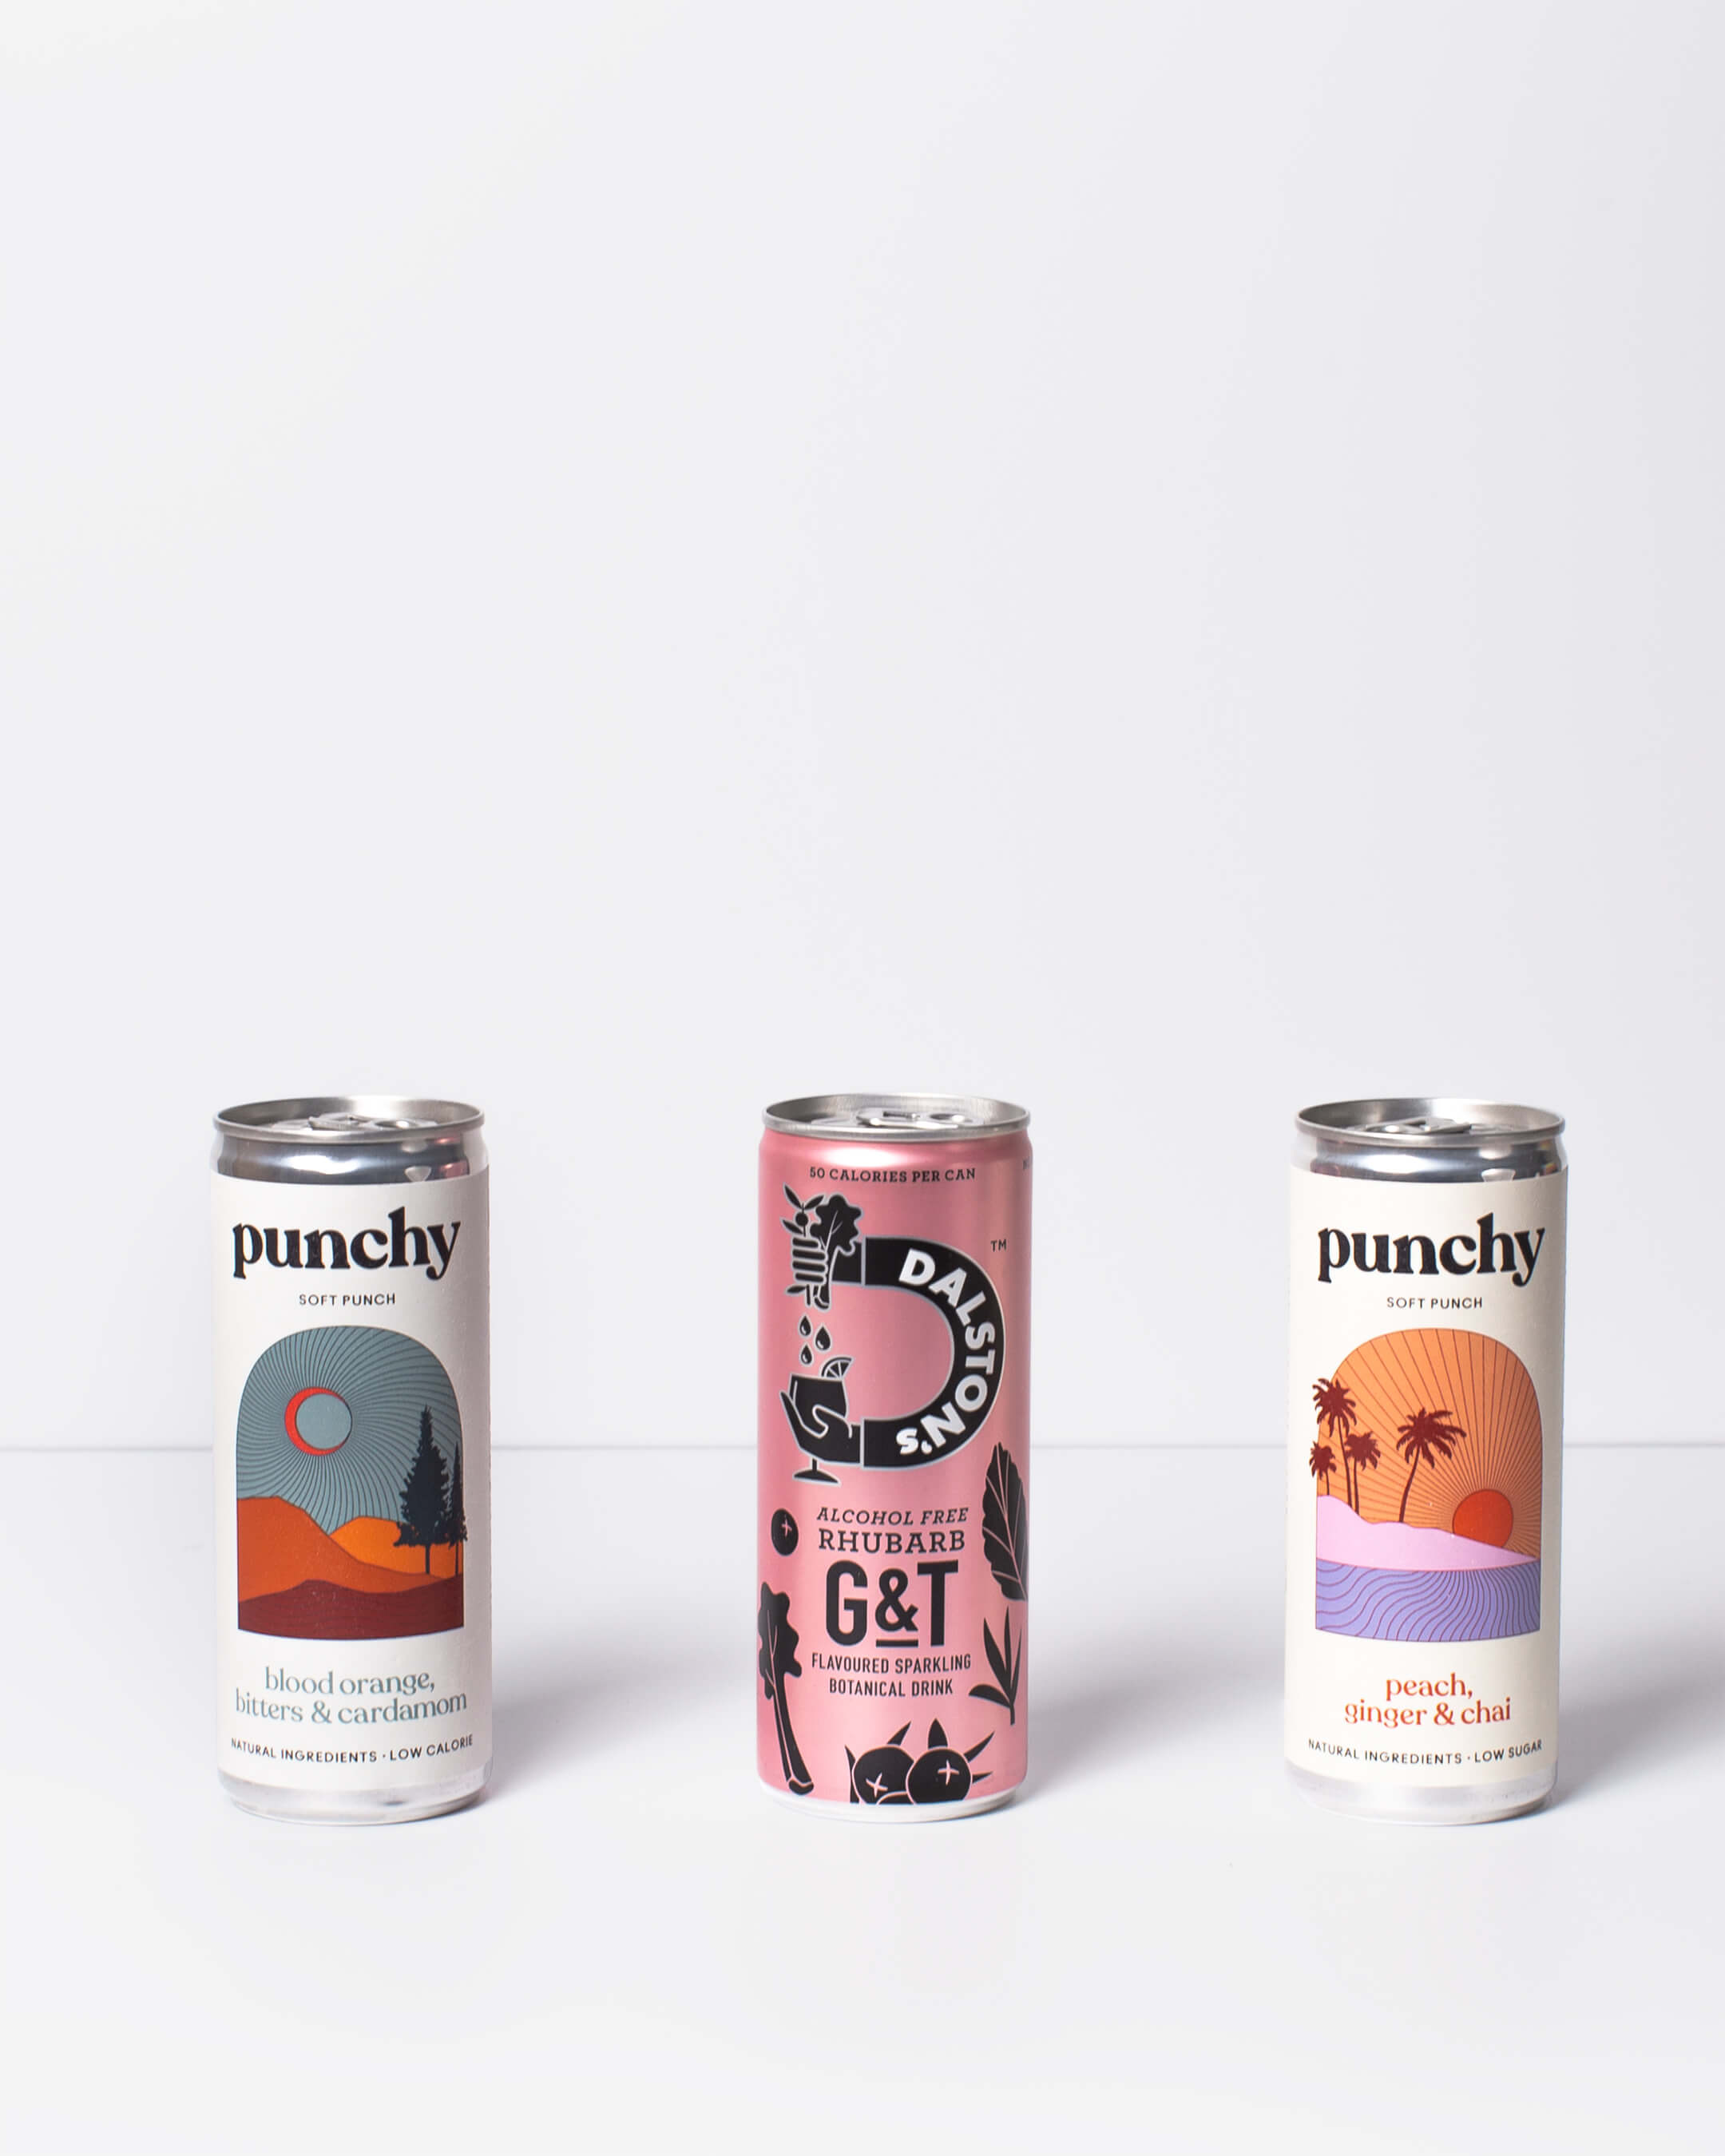 Dalston's alcohol free Gin & Tonic & Punchy soft punch cans